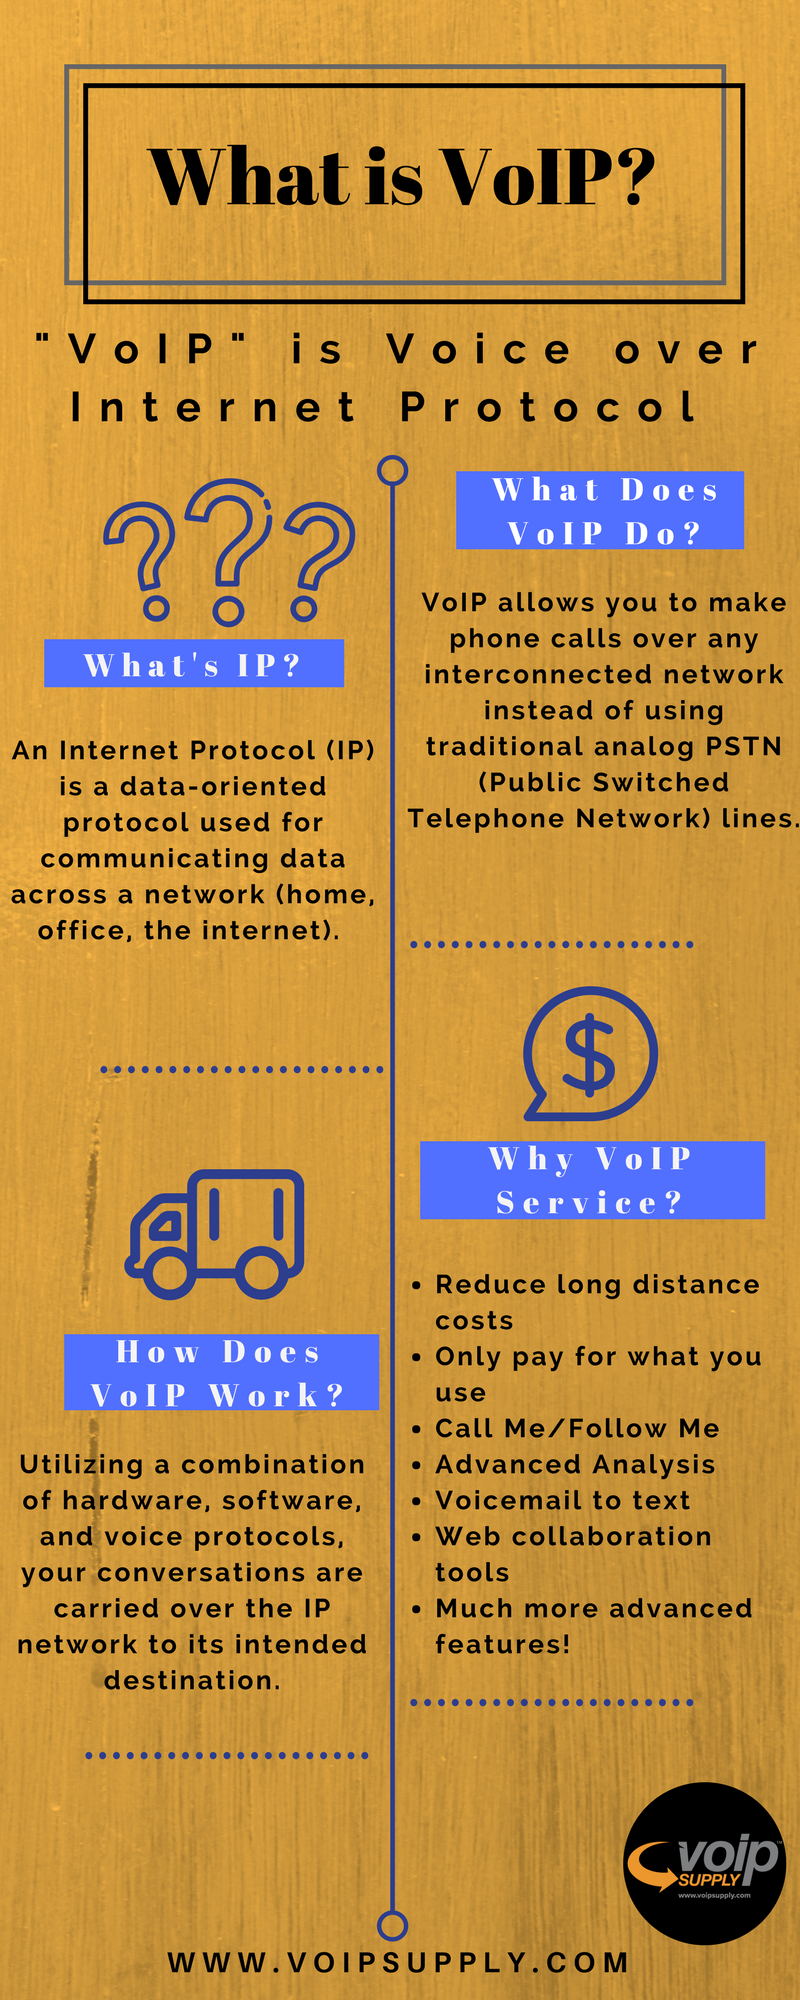 Are you new to VoIP industry? What exactly is VoIP and how does it work? We have collected four most common questions from VoIP beginners like you to help ...